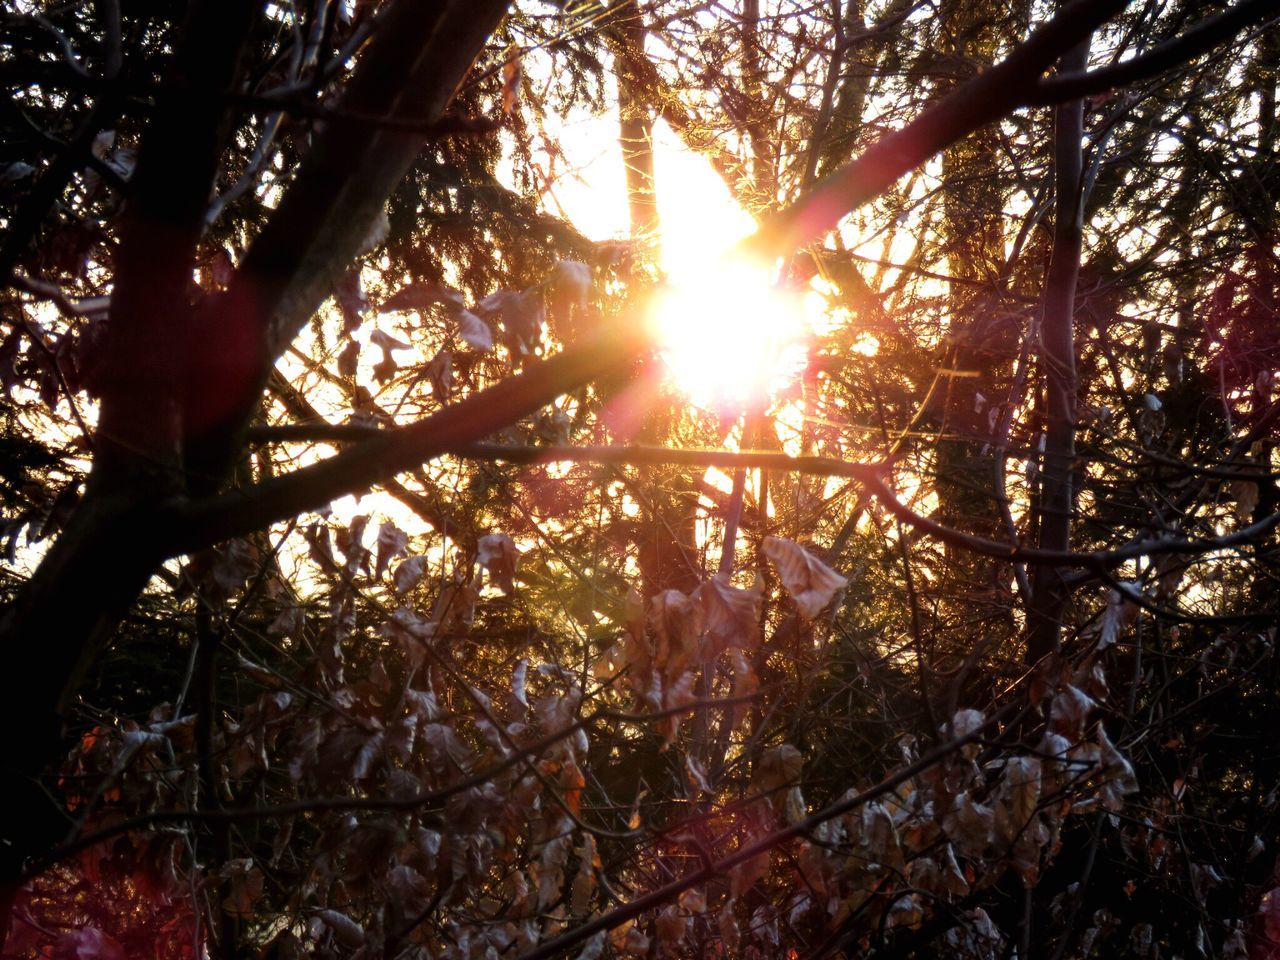 tree, nature, forest, sunbeam, sun, beauty in nature, sunlight, tranquility, tree trunk, growth, scenics, branch, tranquil scene, outdoors, sunset, no people, day, low angle view, sky